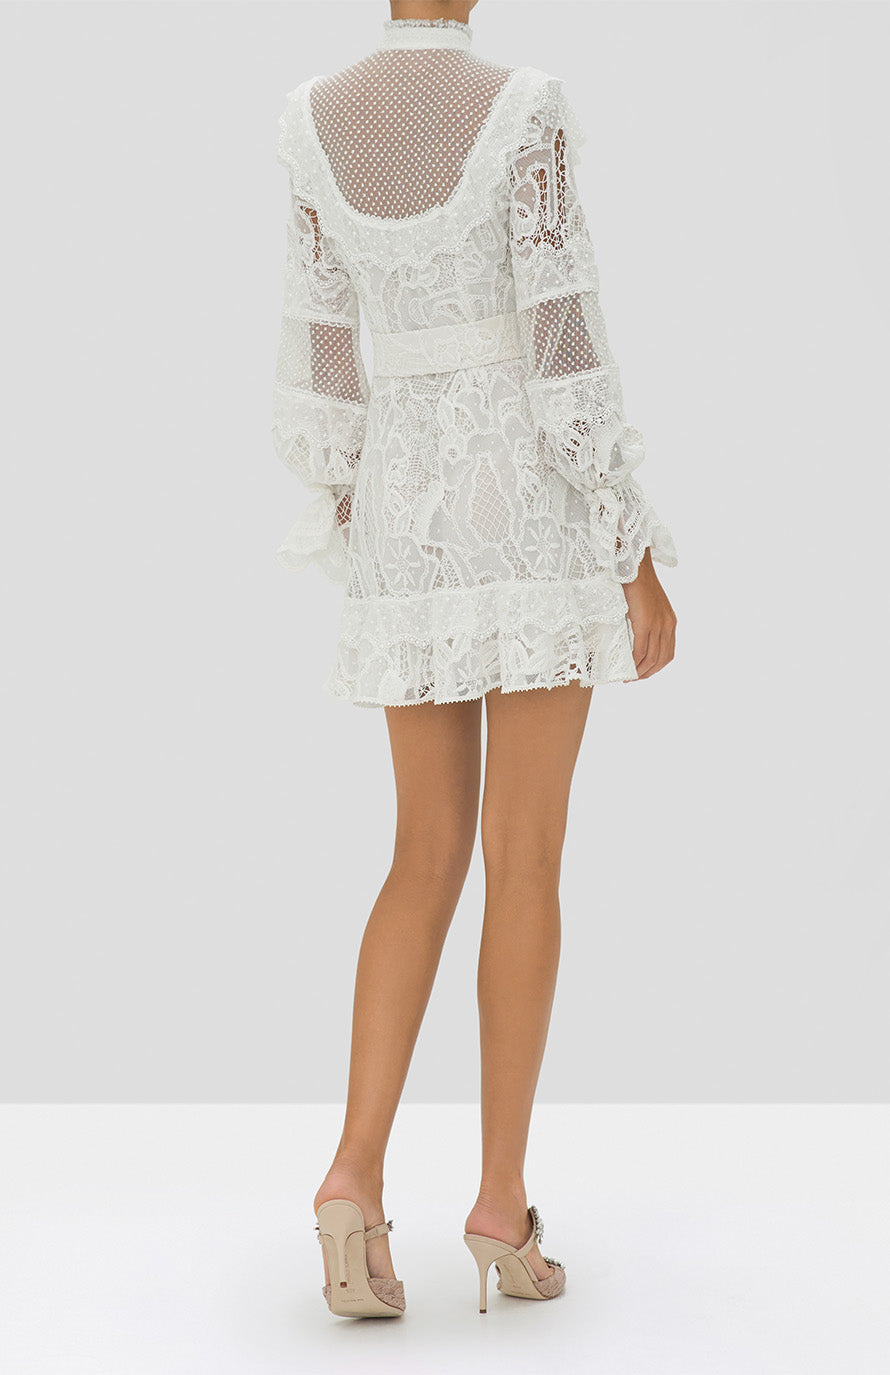 Alexis Shanna Dress in White from the Holiday 2019 Ready To Wear Collection - Rear View